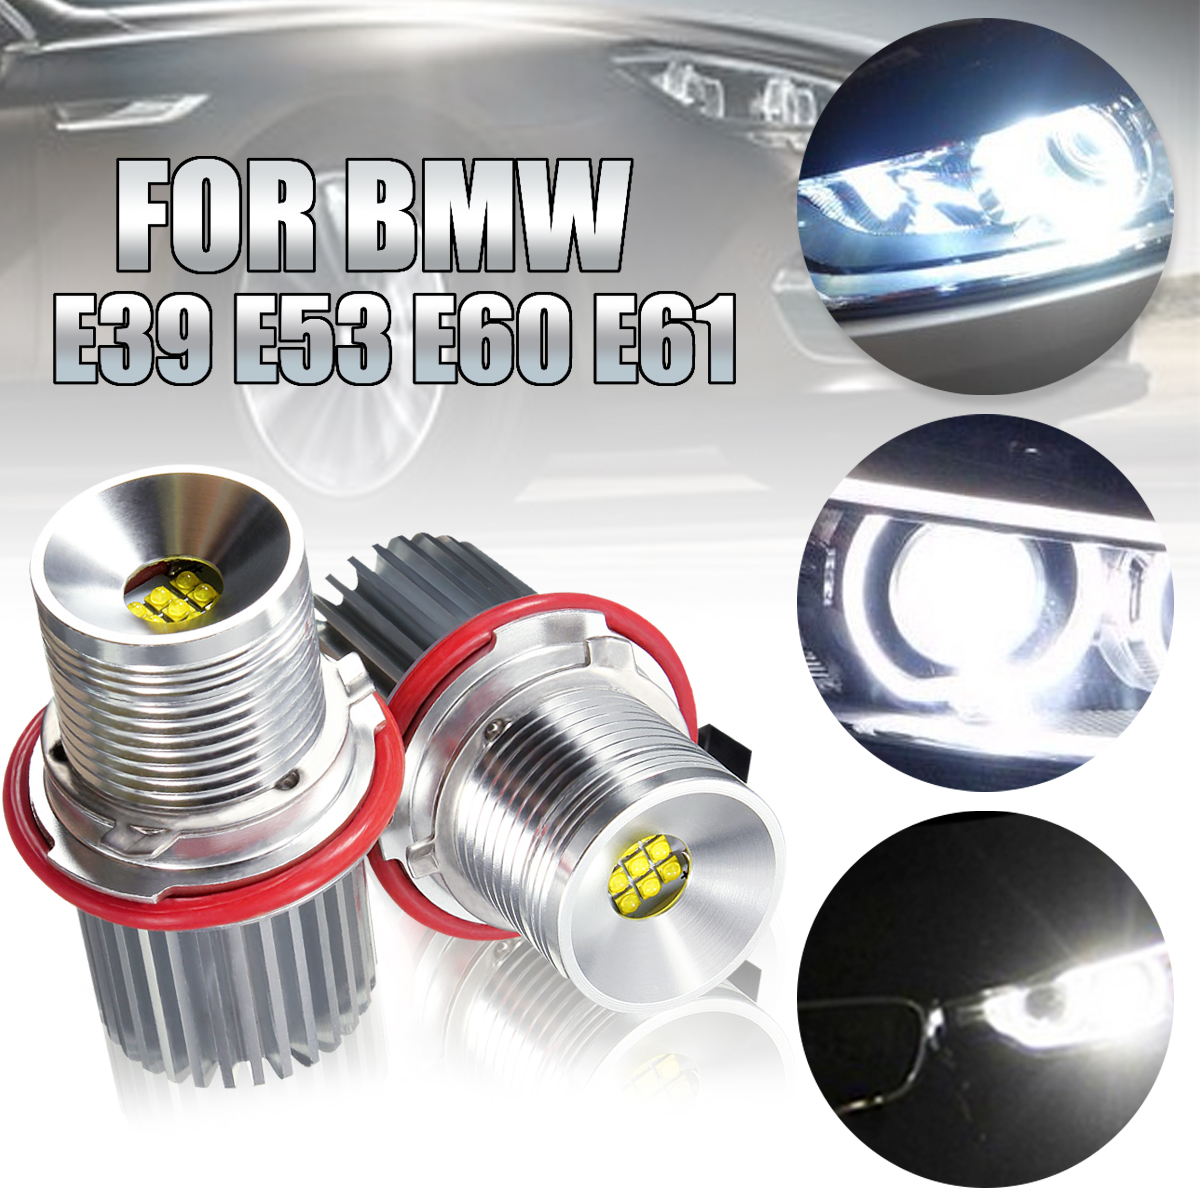 2X 45w White Angle Eyes LED Marker HALO Ring Light Bulb For BMW E39 E53 E60 E61 Super Bright Led Energy Save